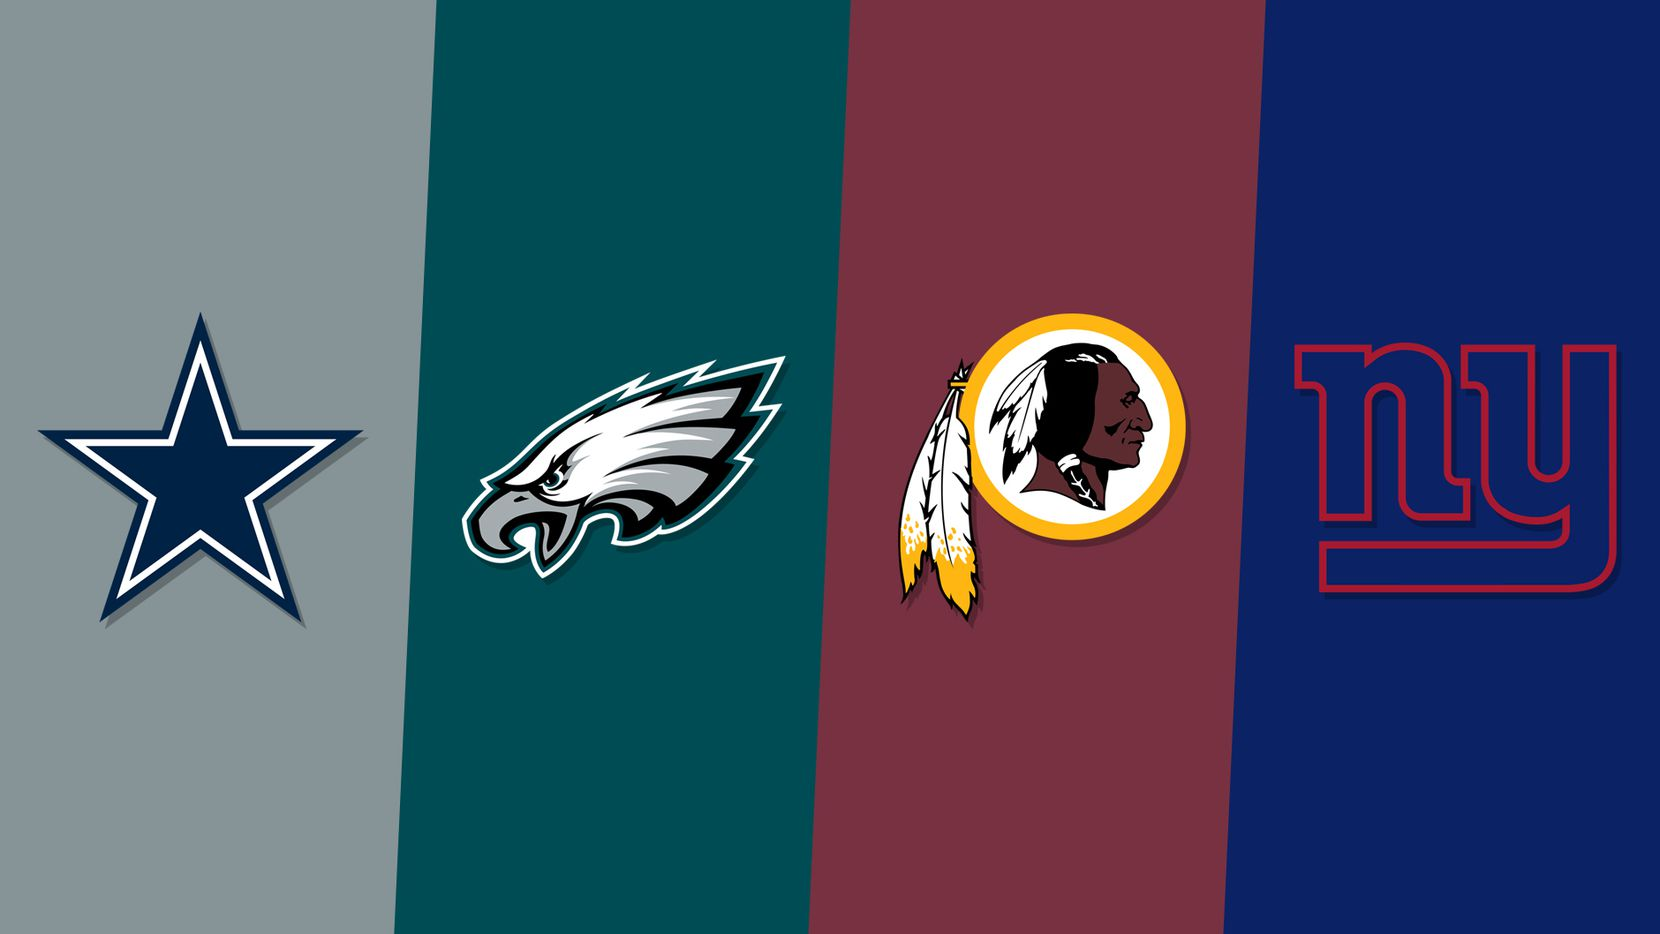 The NFC East teams ranked in order of how they finished after the 2018 regular season.